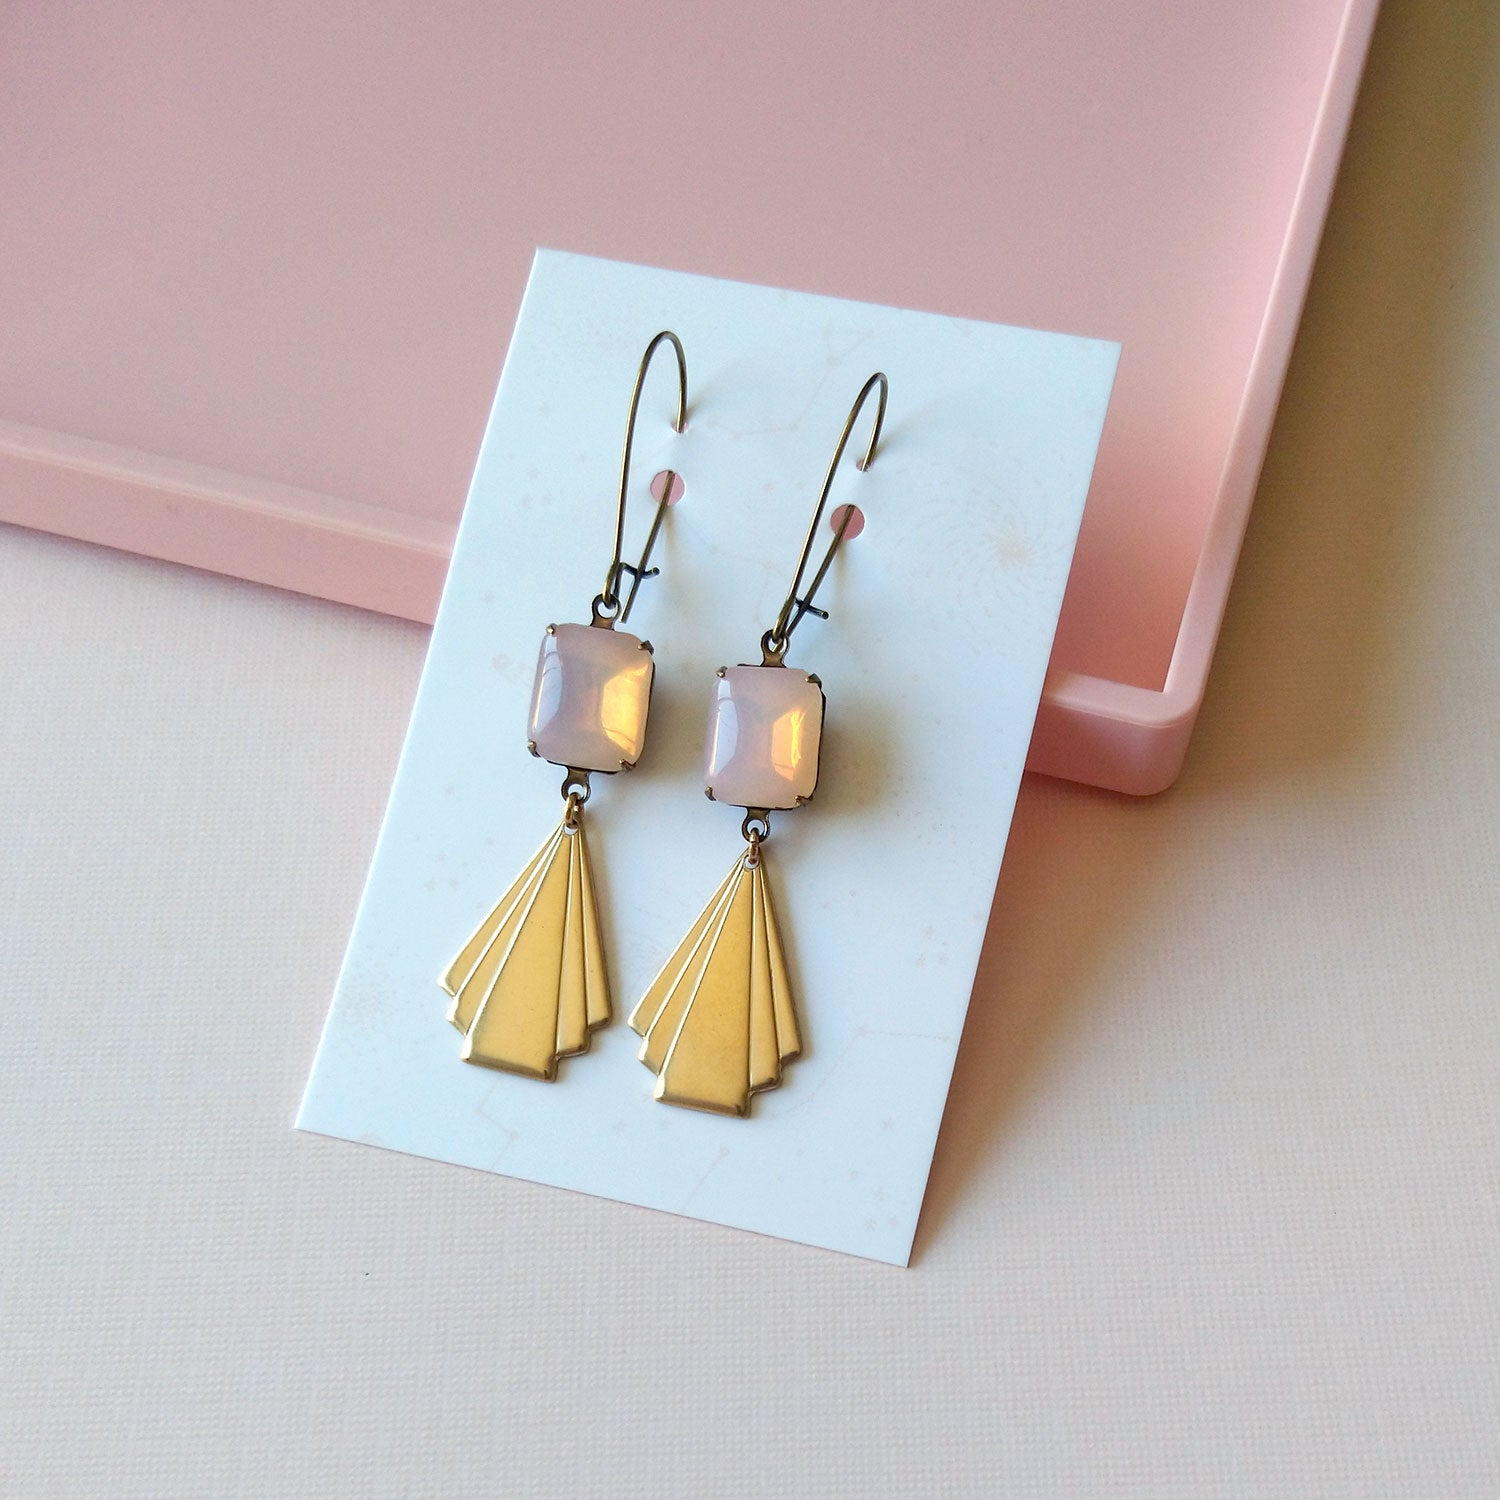 art deco inspired earrings